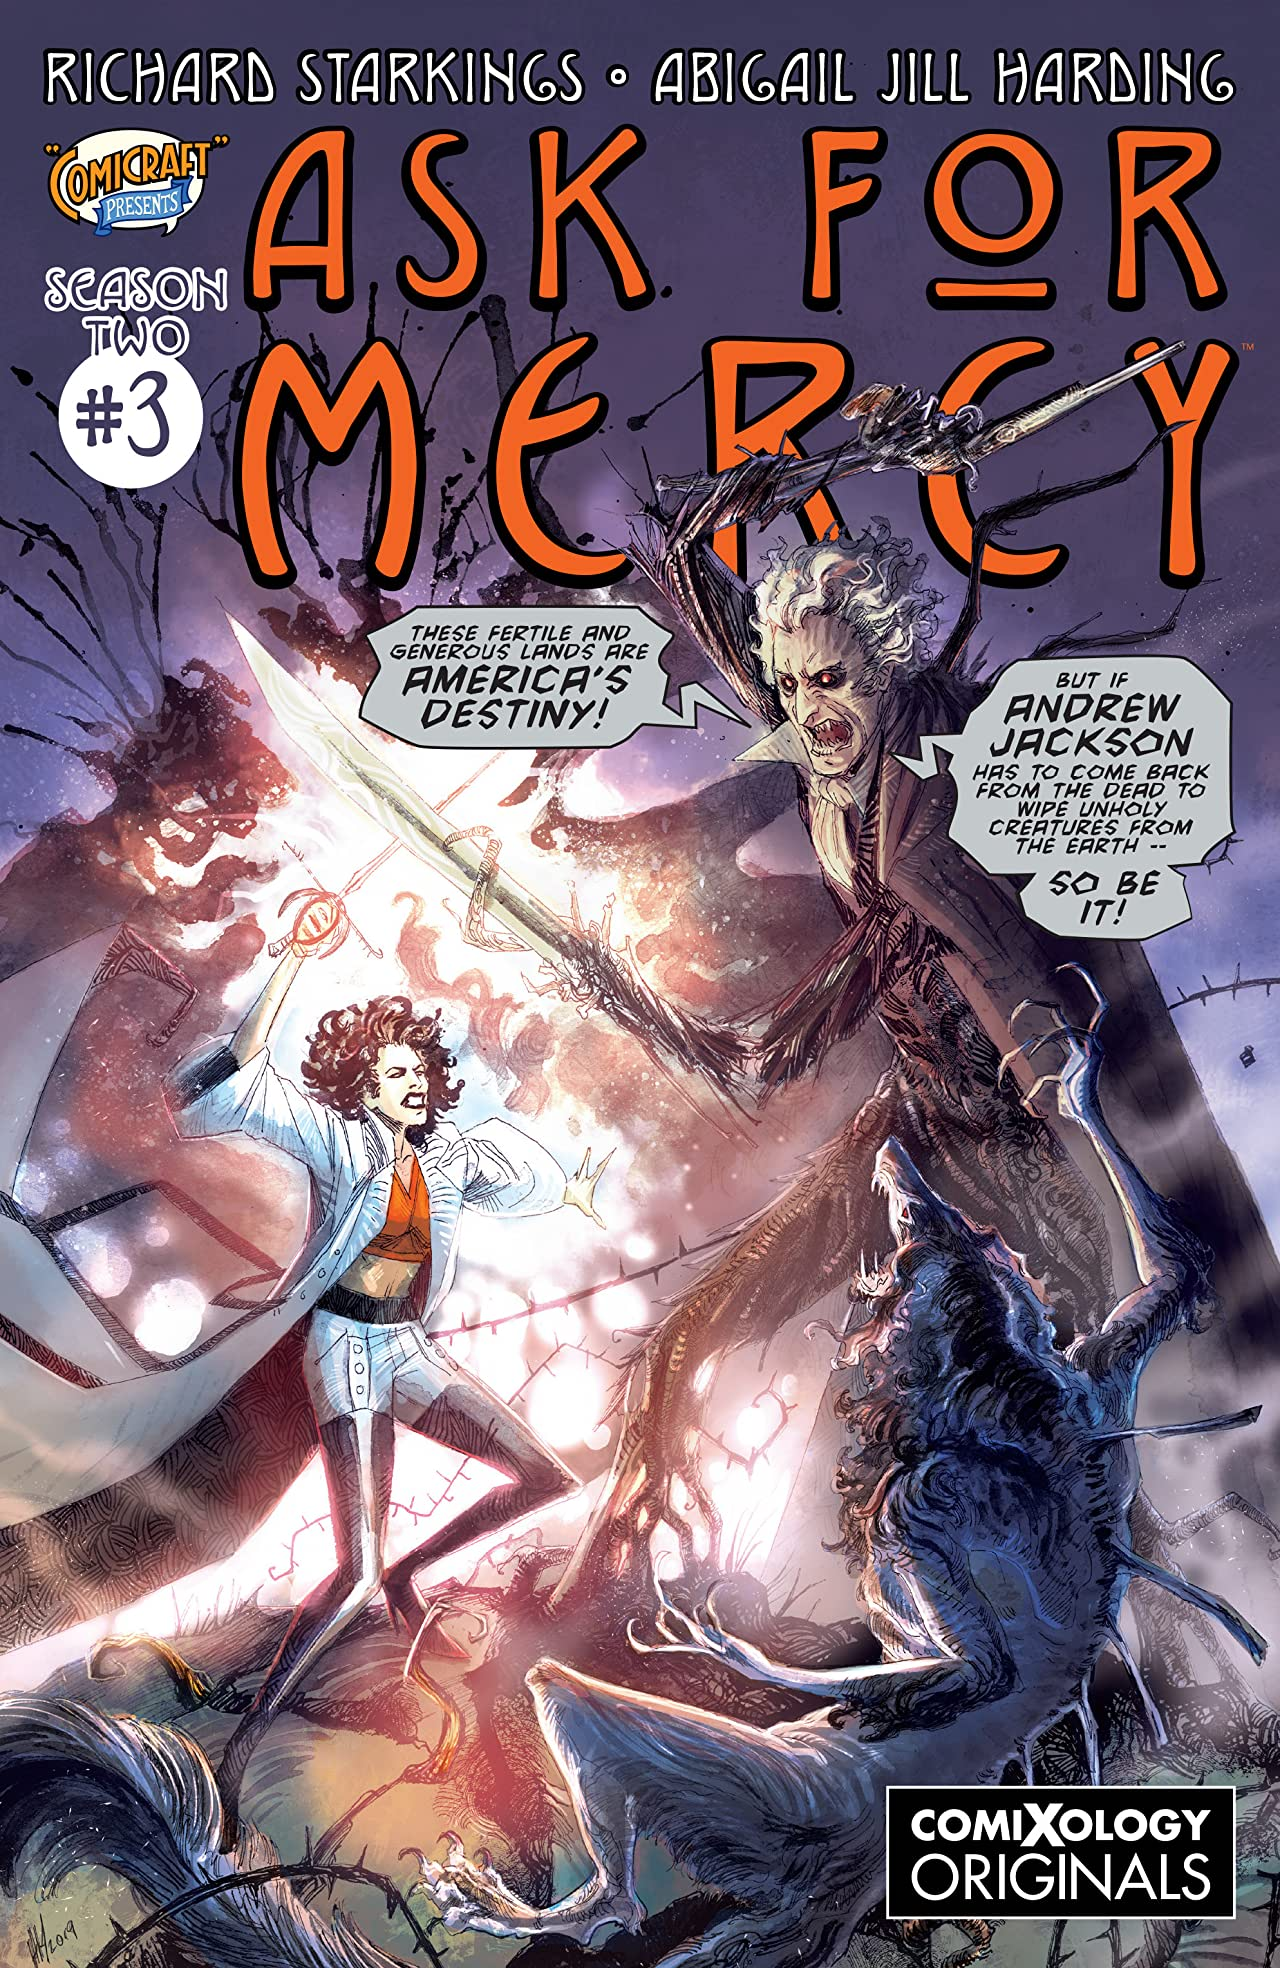 Ask For Mercy Season Two (comiXology Originals) #3 (of 5): The Heart of the Earth